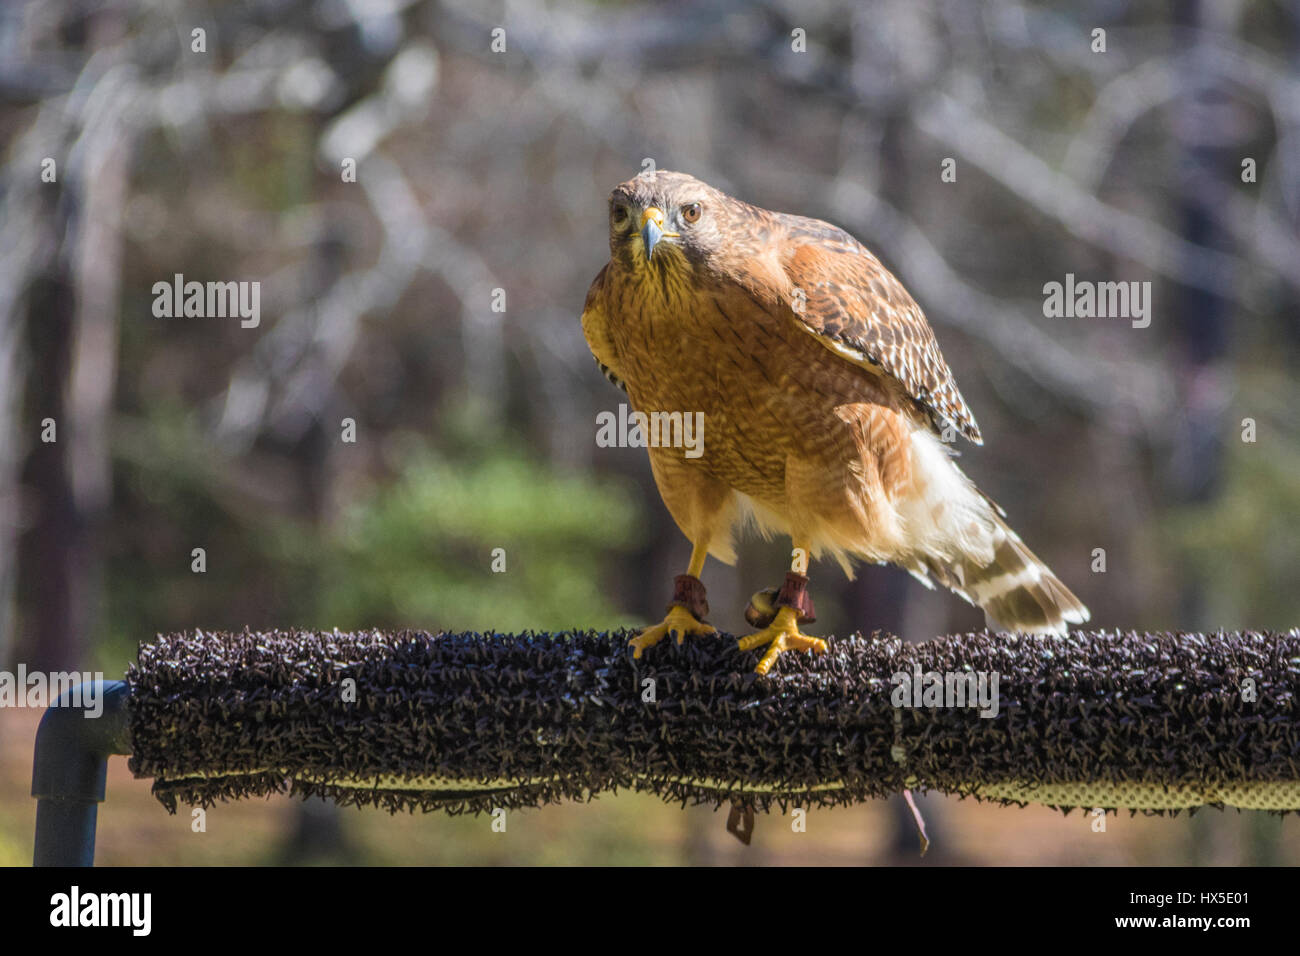 Red-shouldered Hawk in Callaway Garden's Birds of Prey rehabilitation and education program. - Stock Image